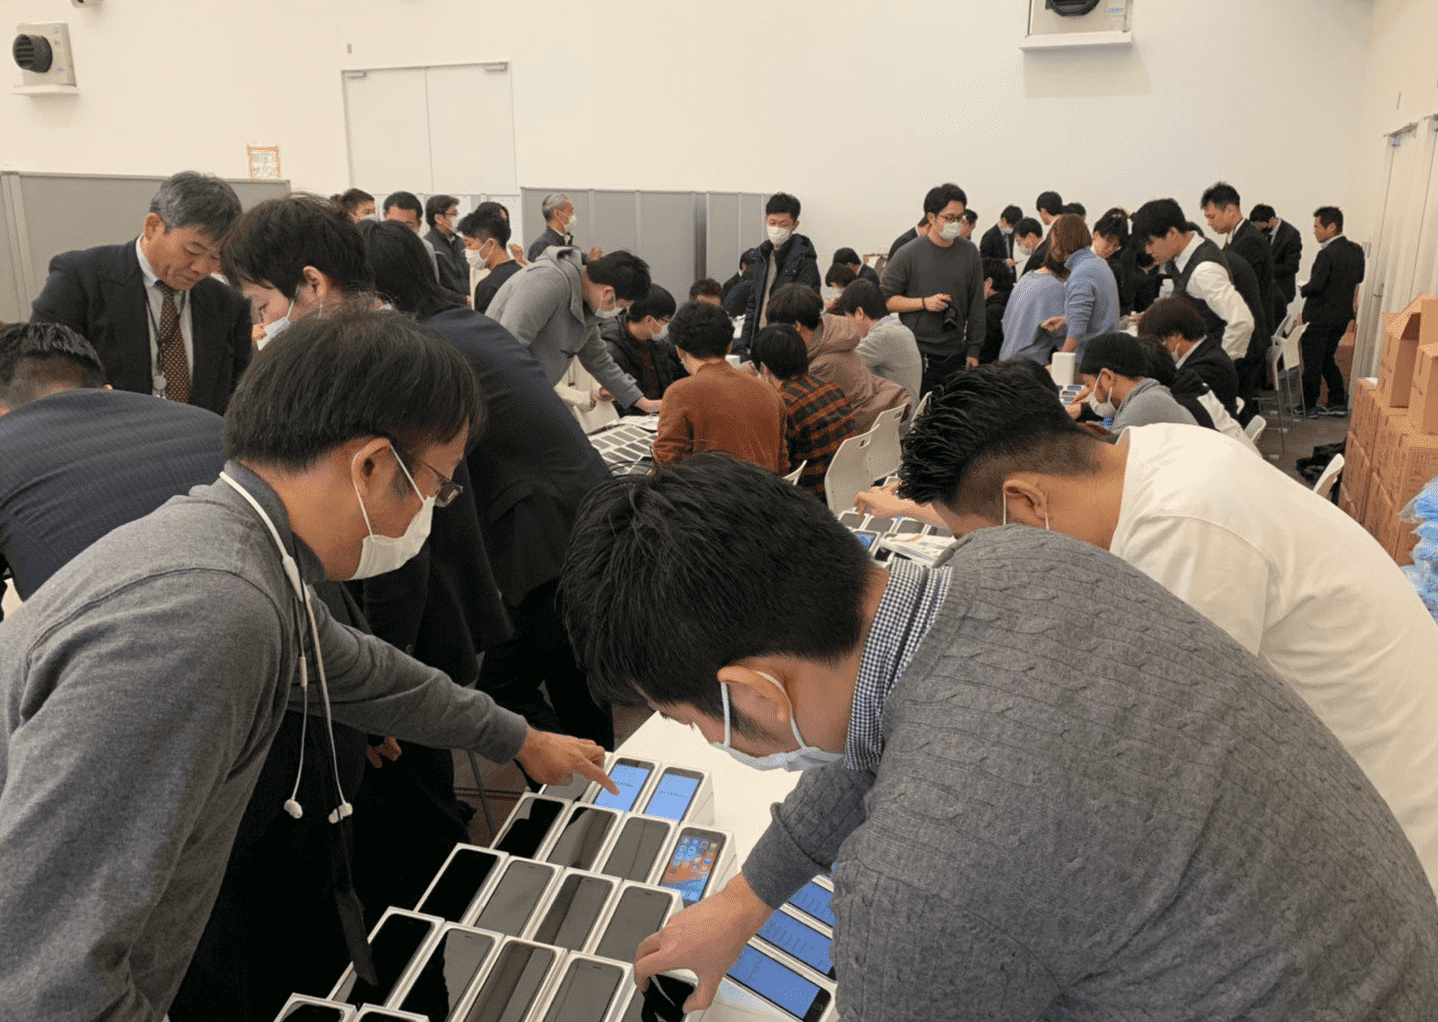 Japanese Ministry Of Health Treated 2000 Iphone Stuck On Board Img 2